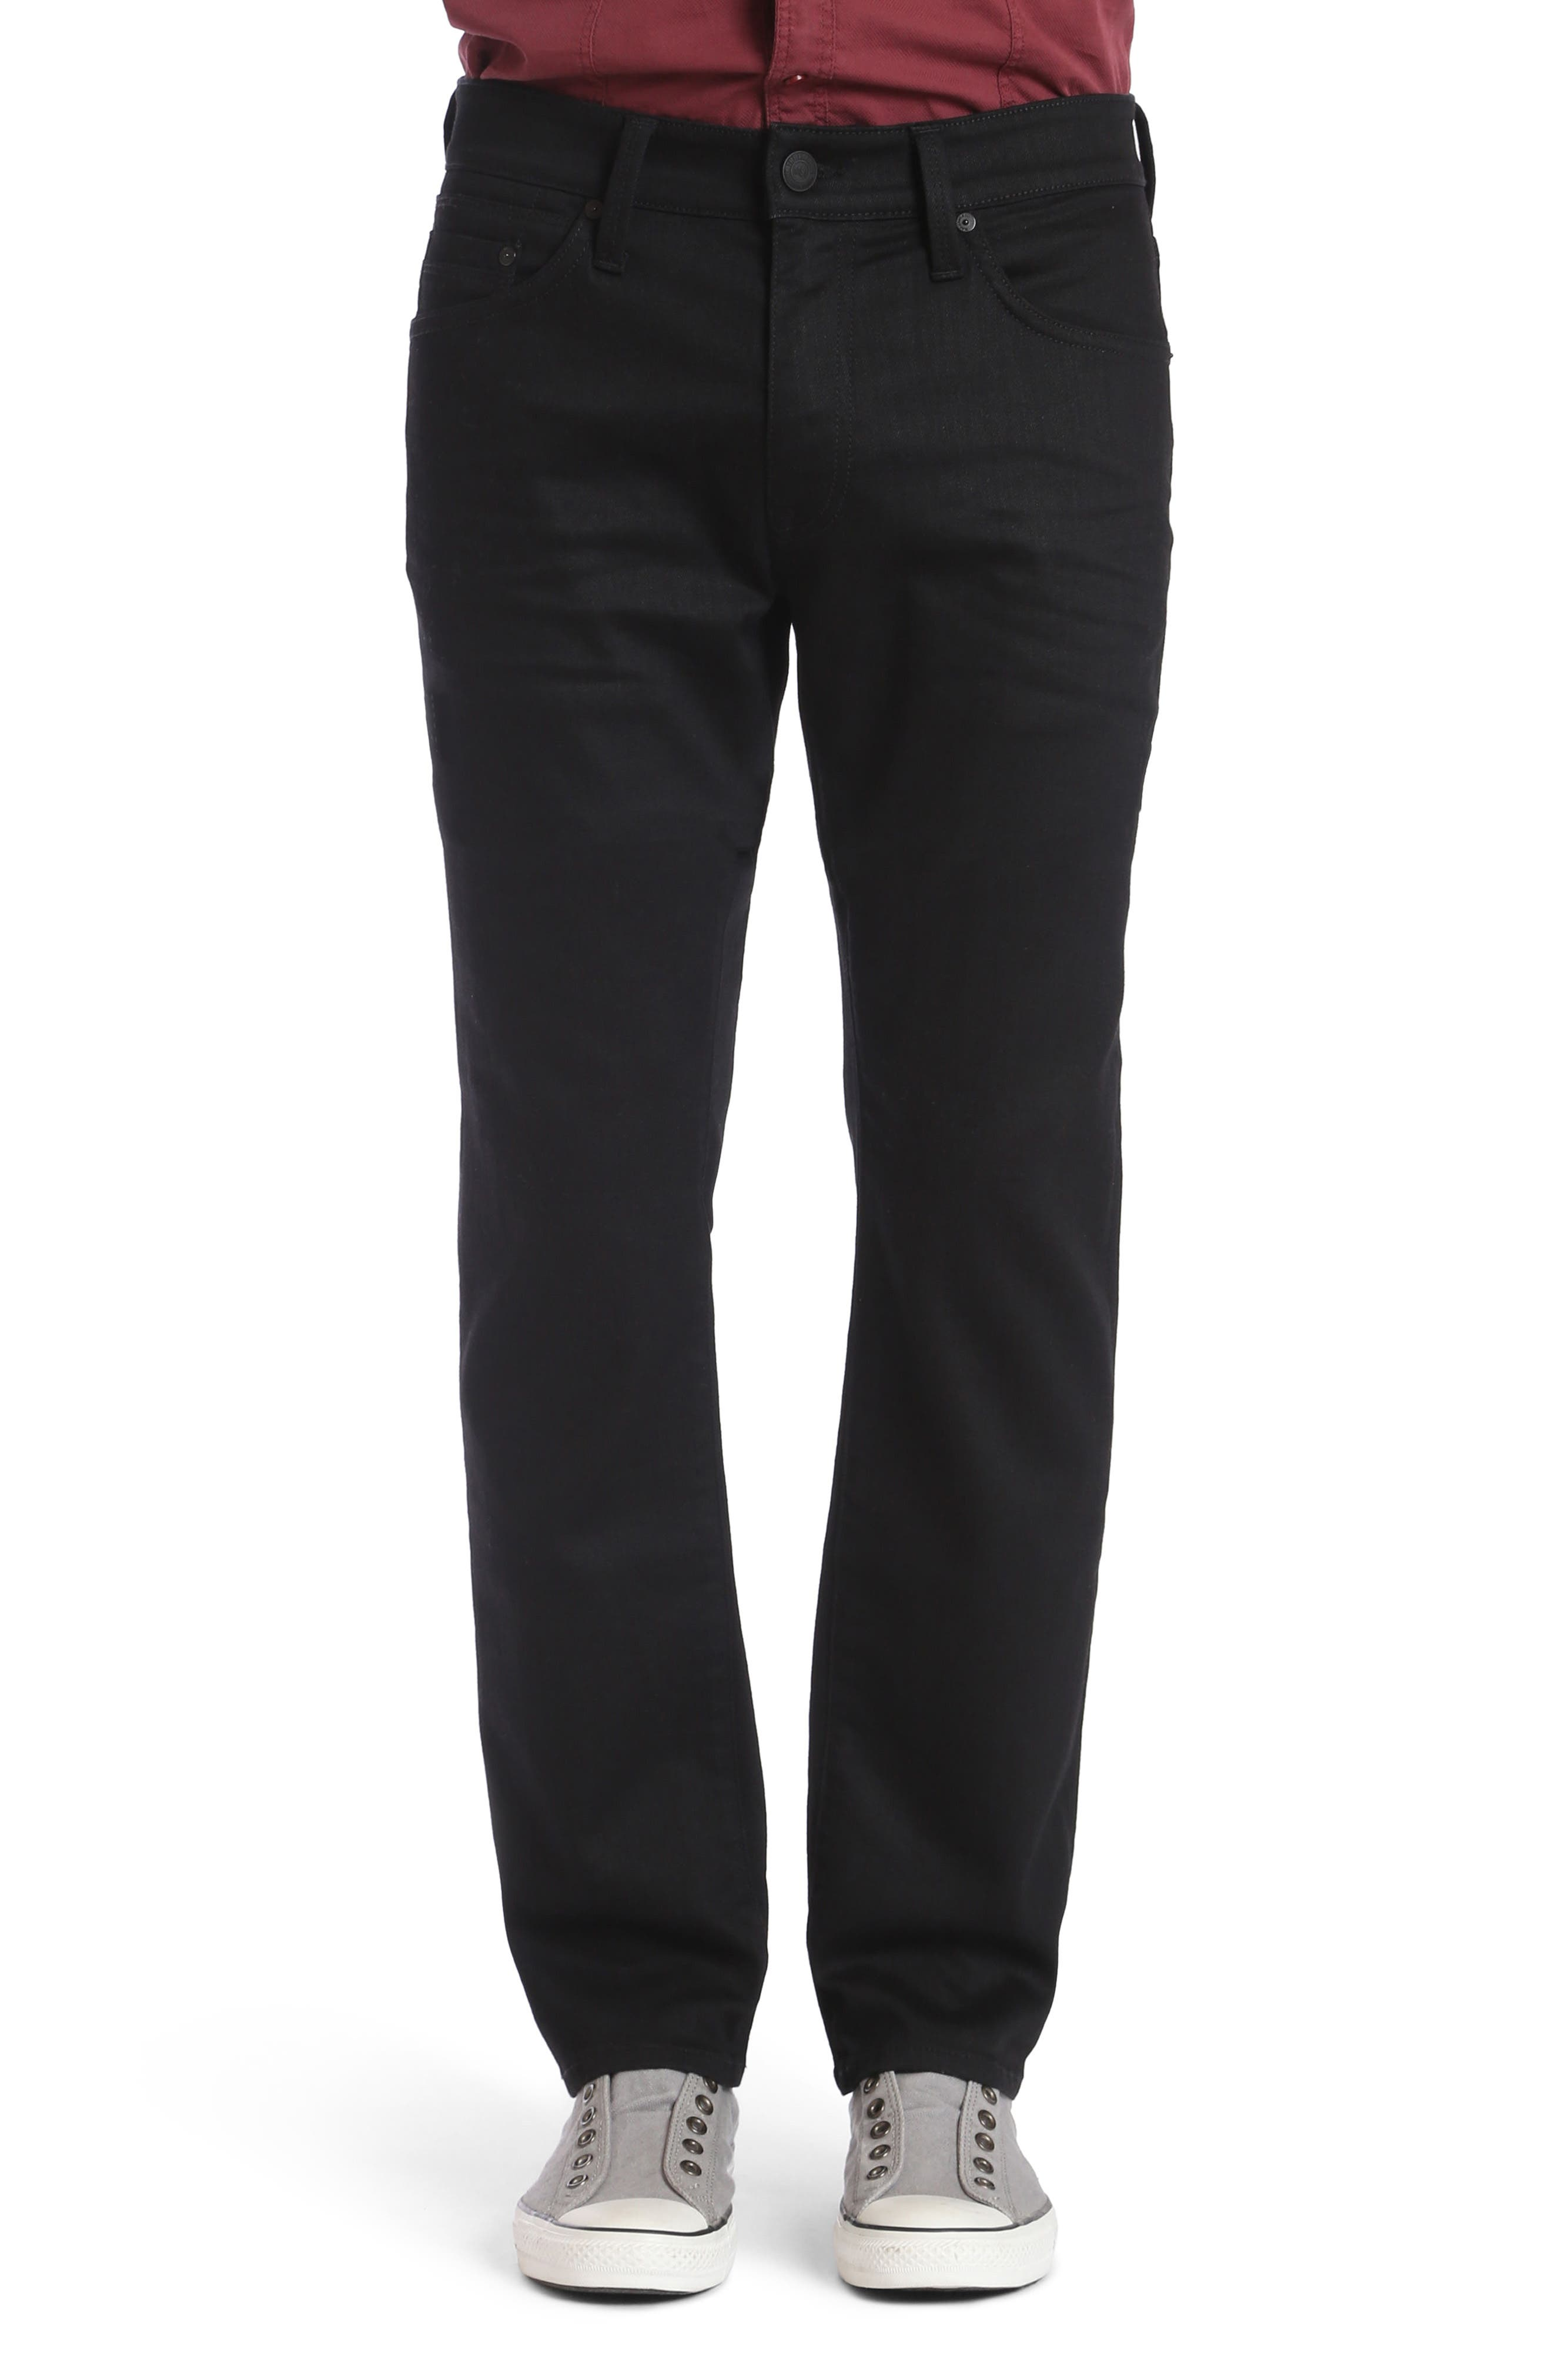 Zach Straight Fit Jeans,                             Main thumbnail 1, color,                             001